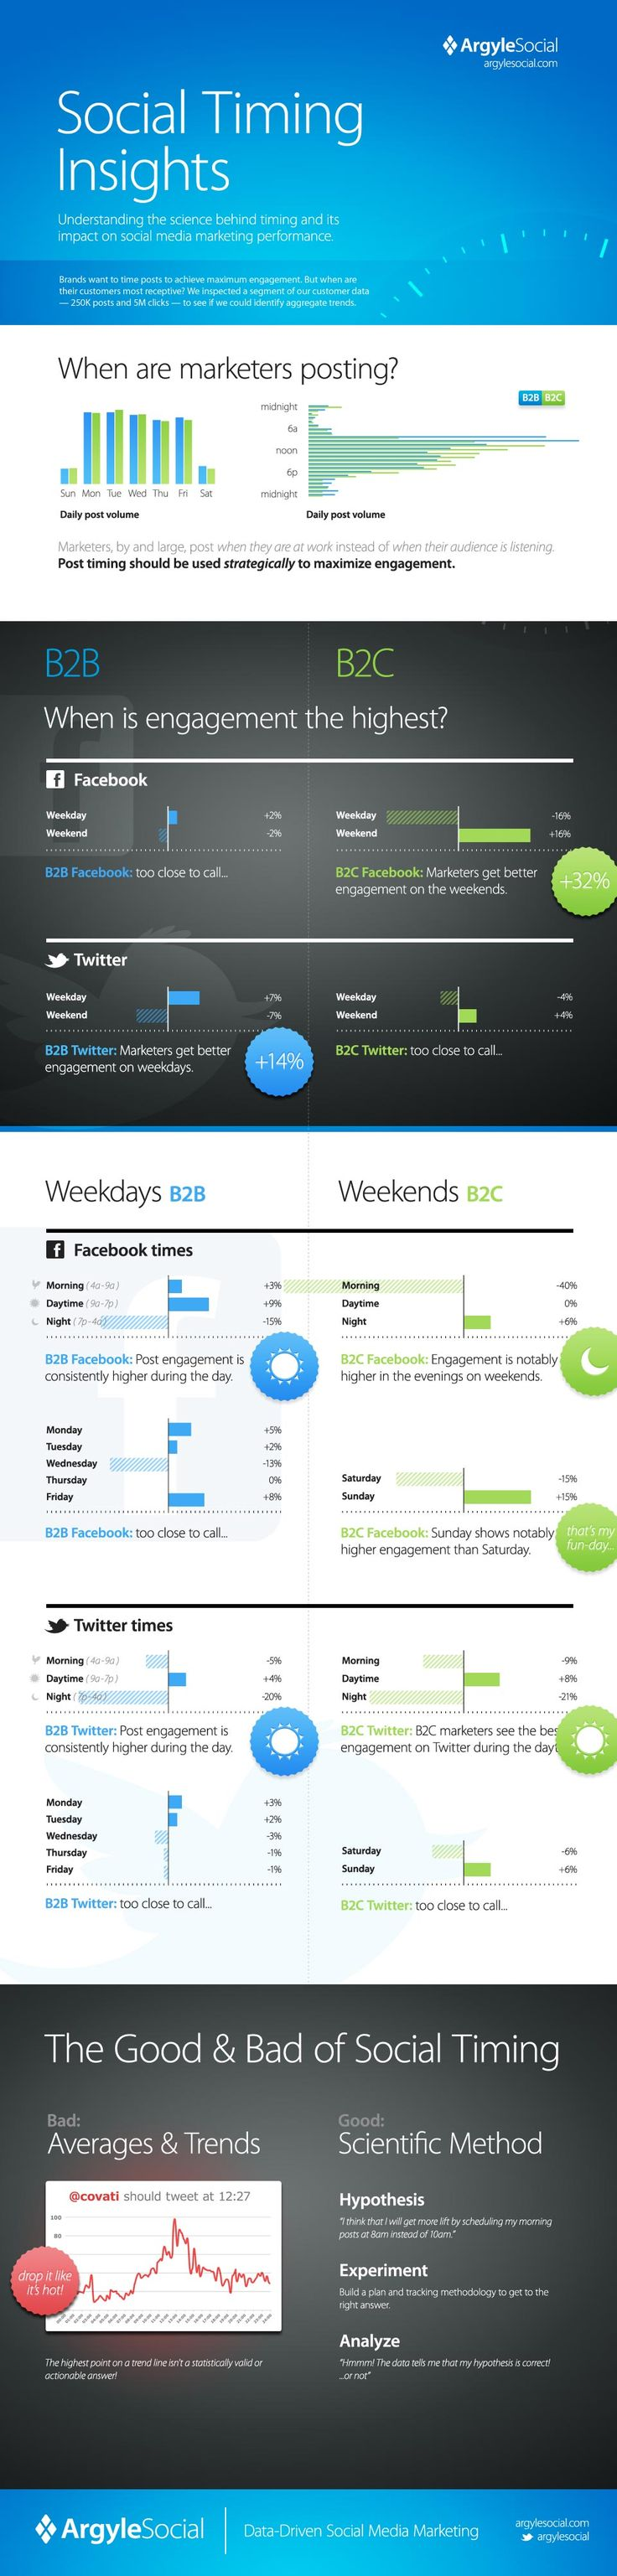 Pretty cool stats on when people use social media, when will your posts get the most attention